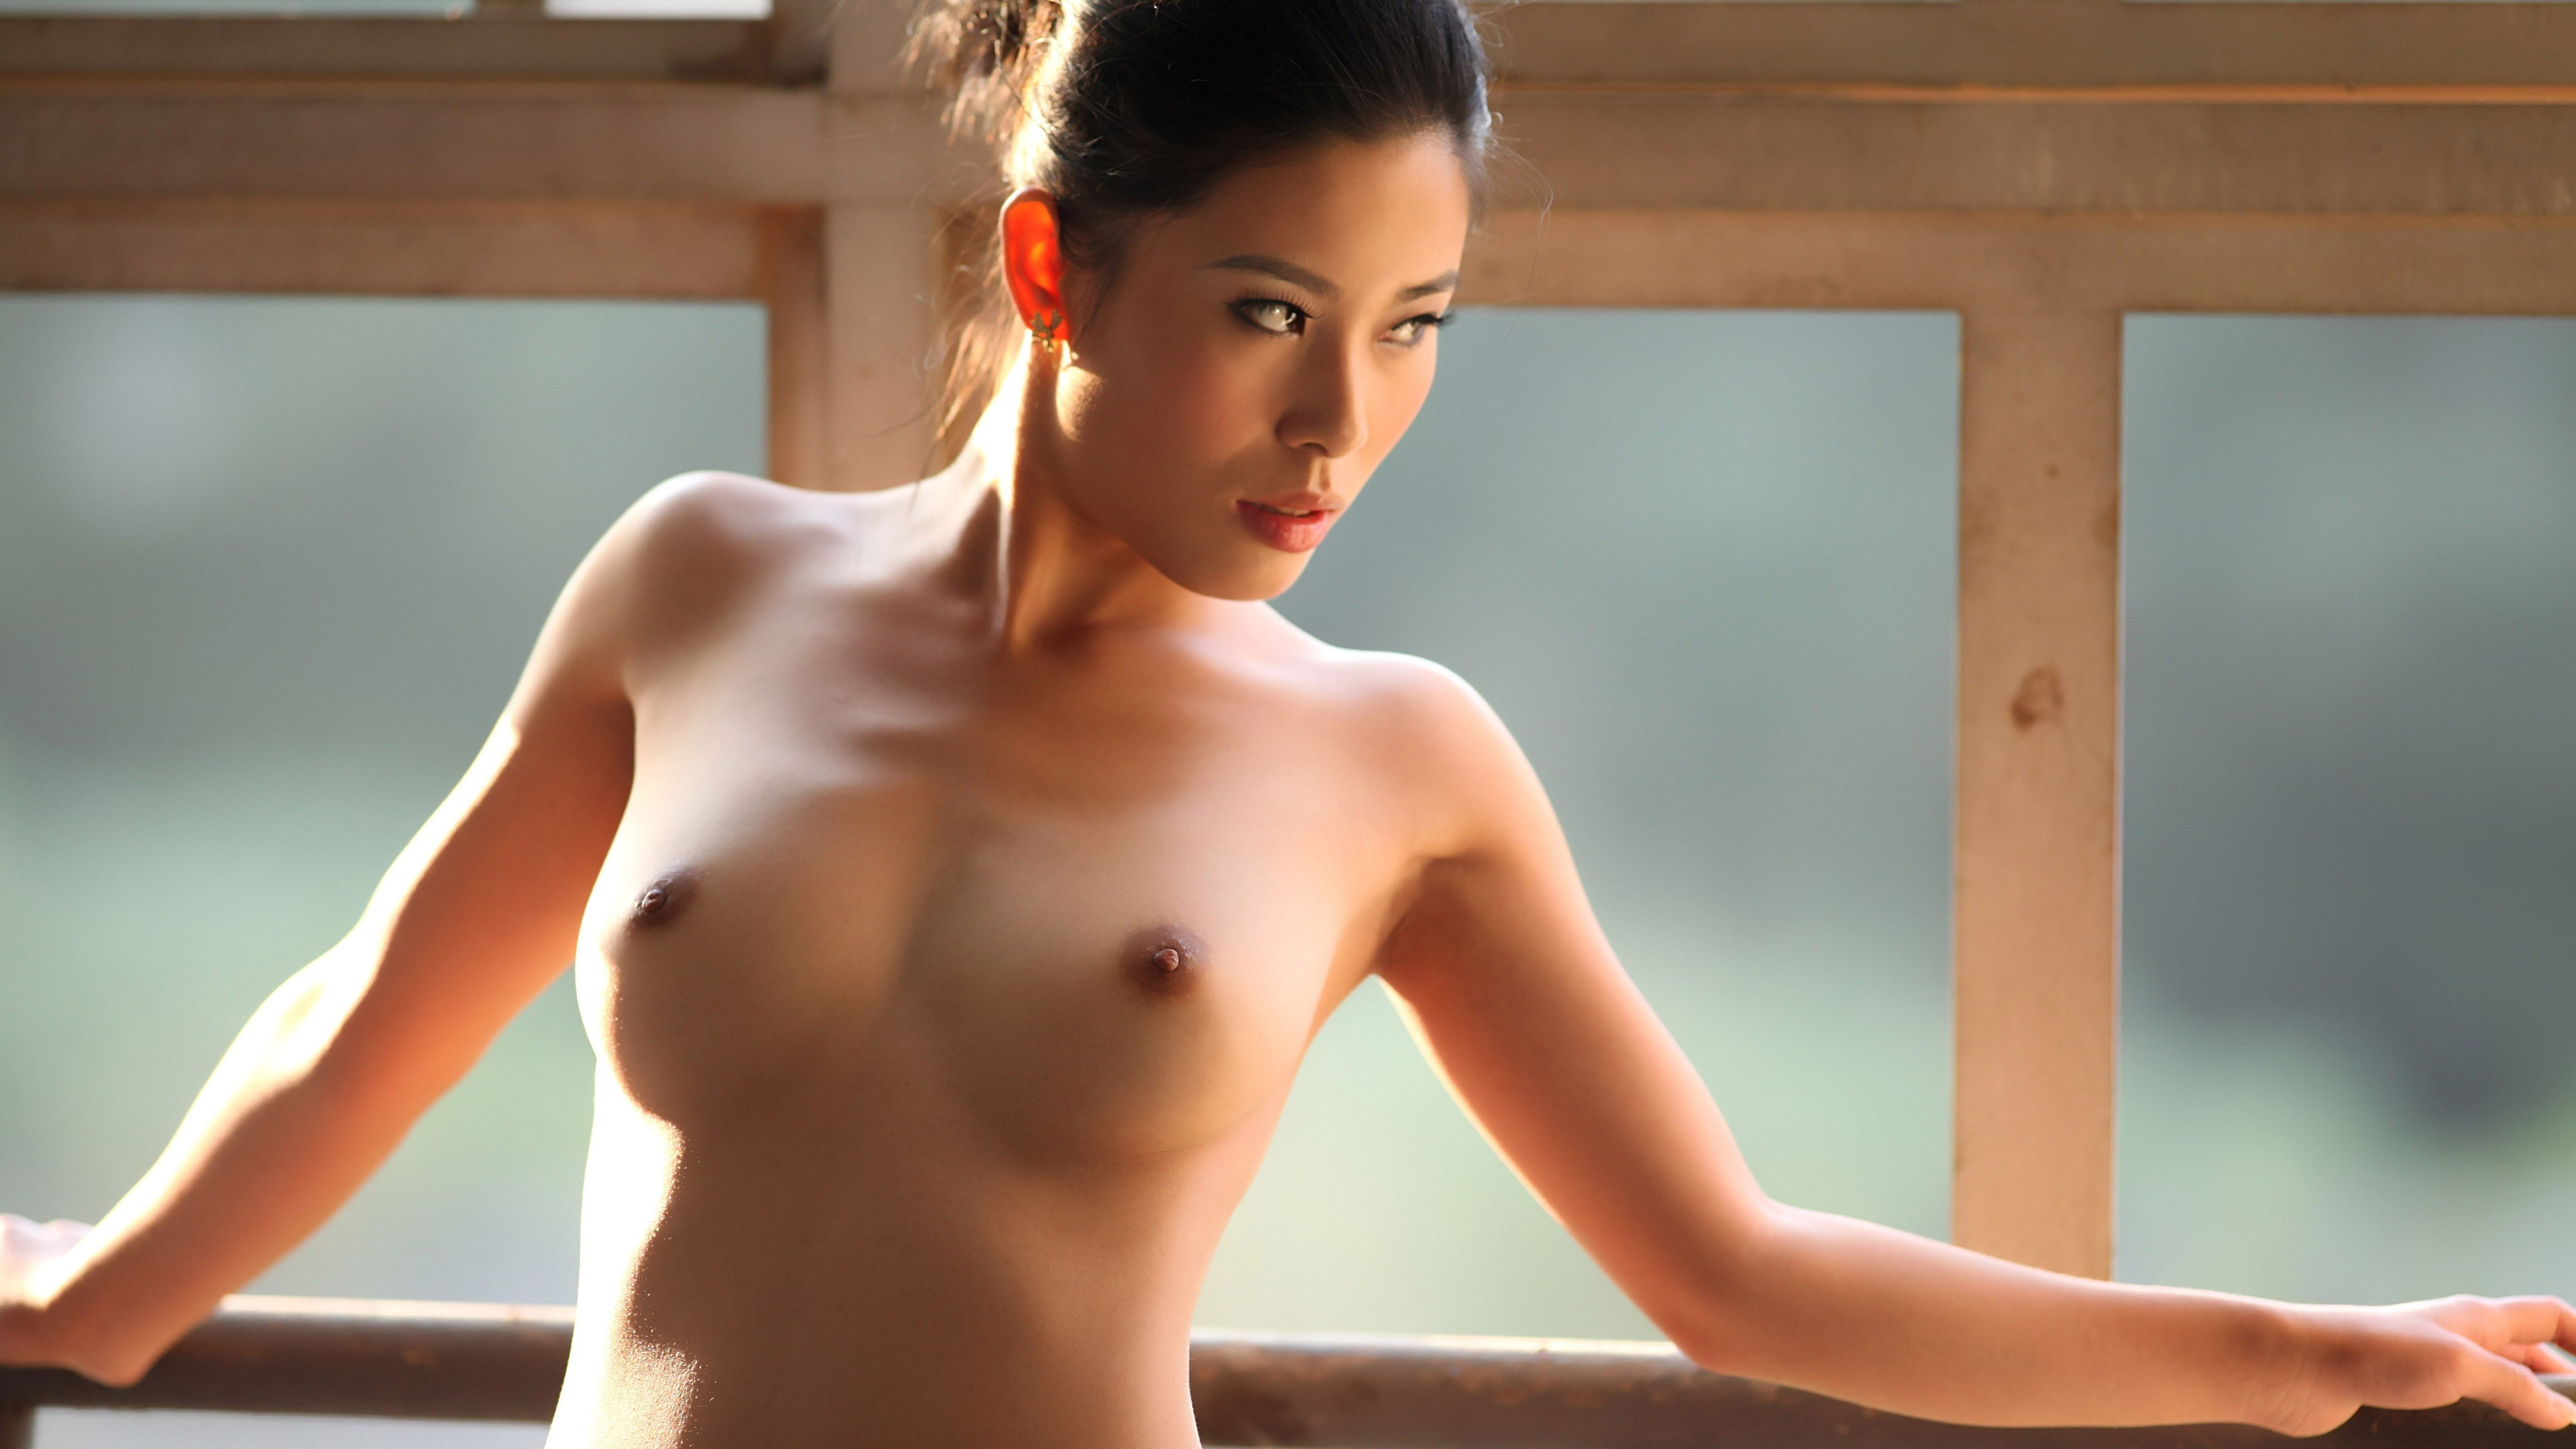 Wallpaper Asian, Brunette, Women, Nude, Sexy, Boobs, Tits -6961